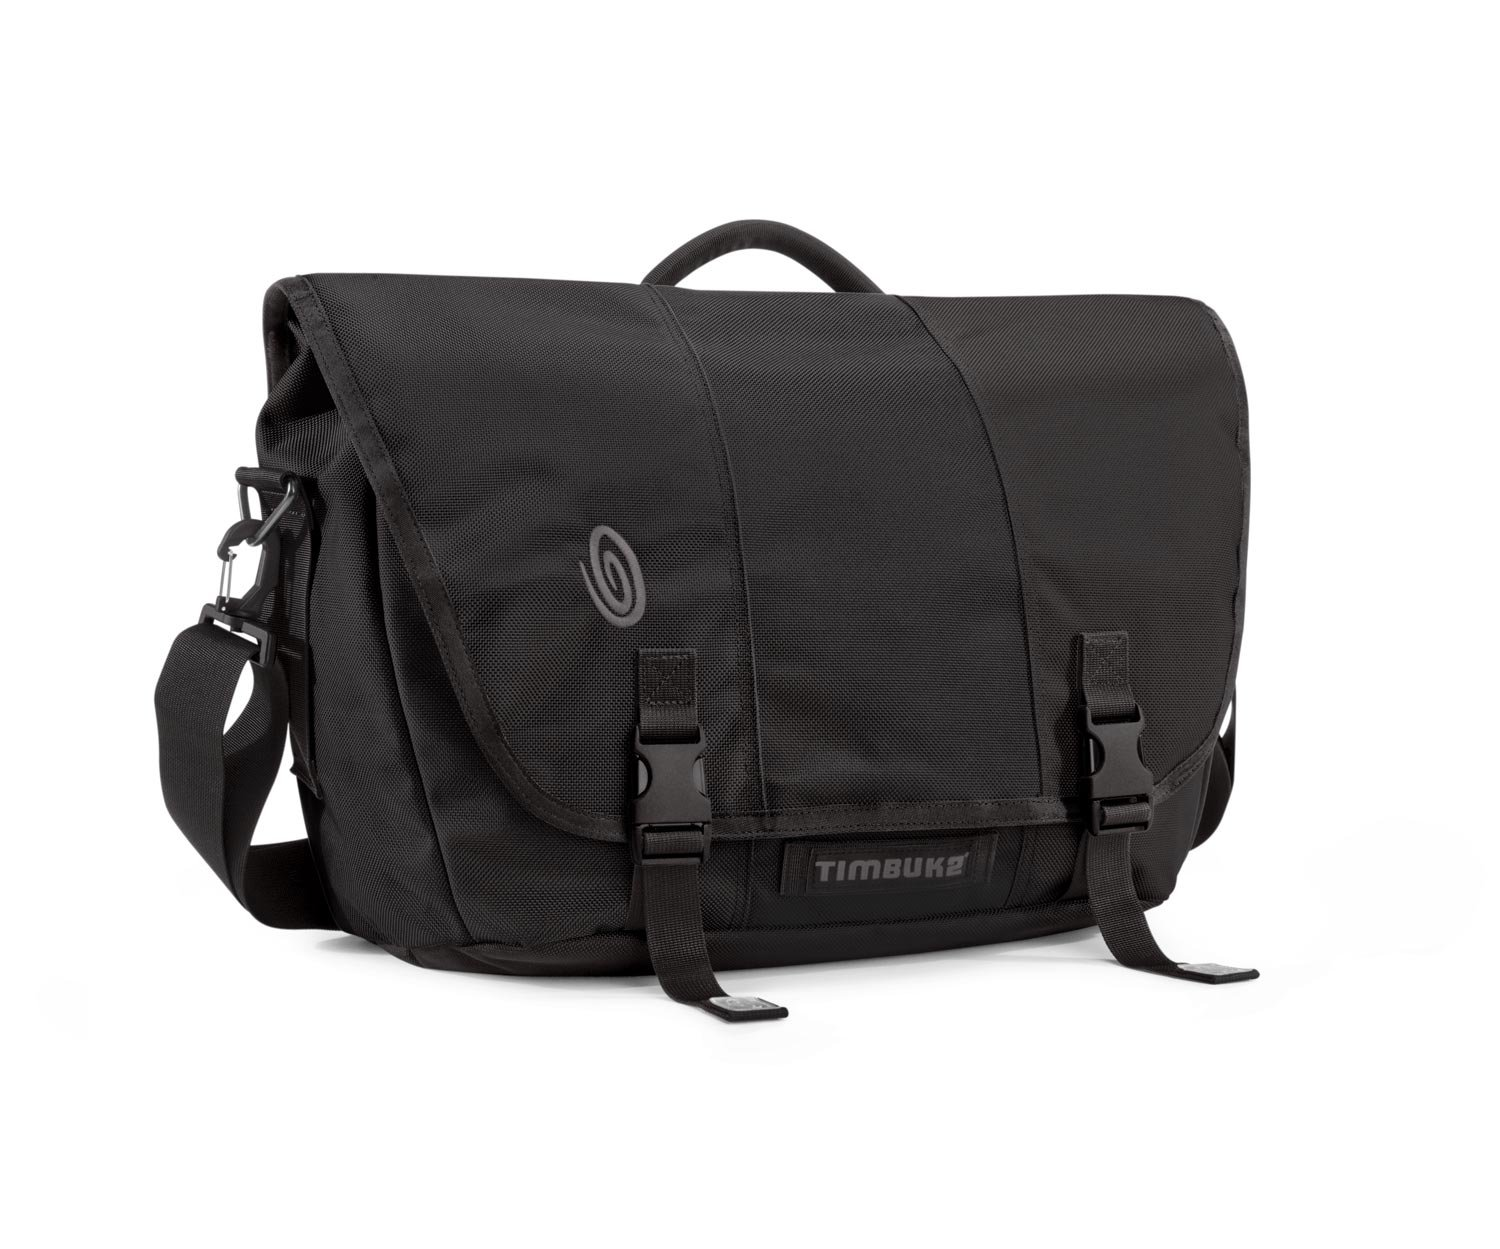 Timbuk2 Commute Messenger Bag 2013, Black, Large by Timbuk2